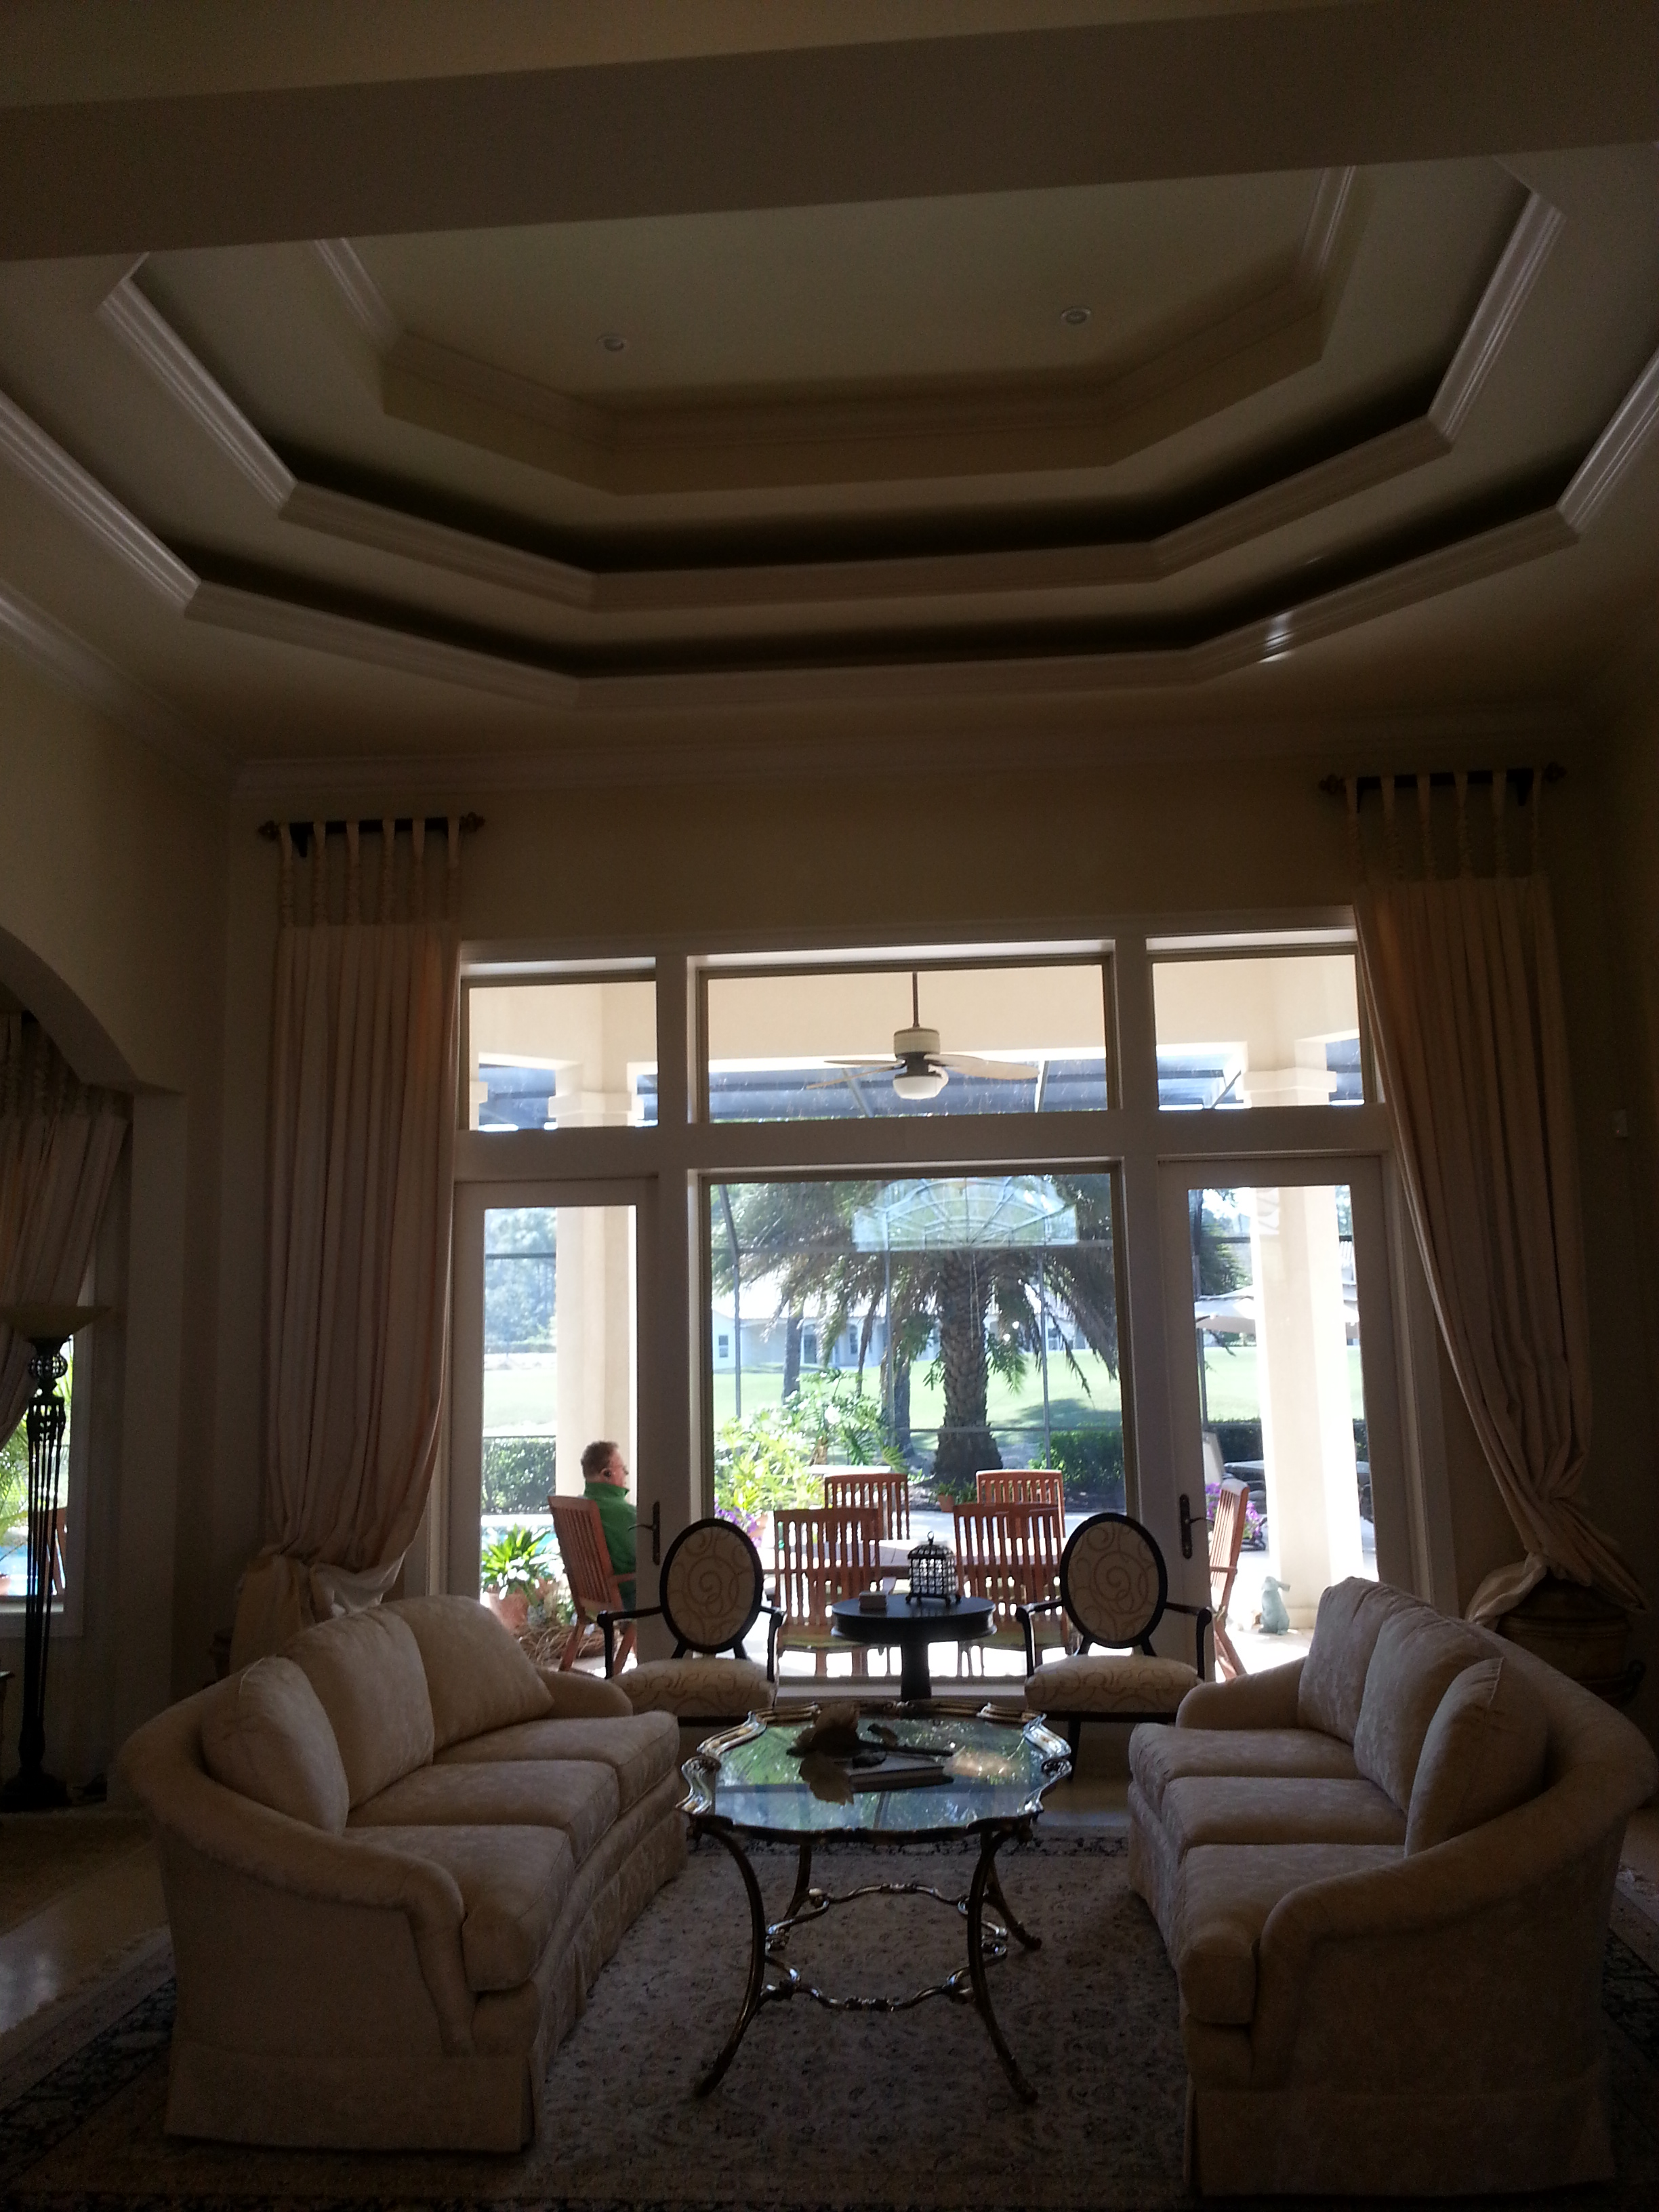 Interior painting contractor in ponte vedra completes for Interior contractors